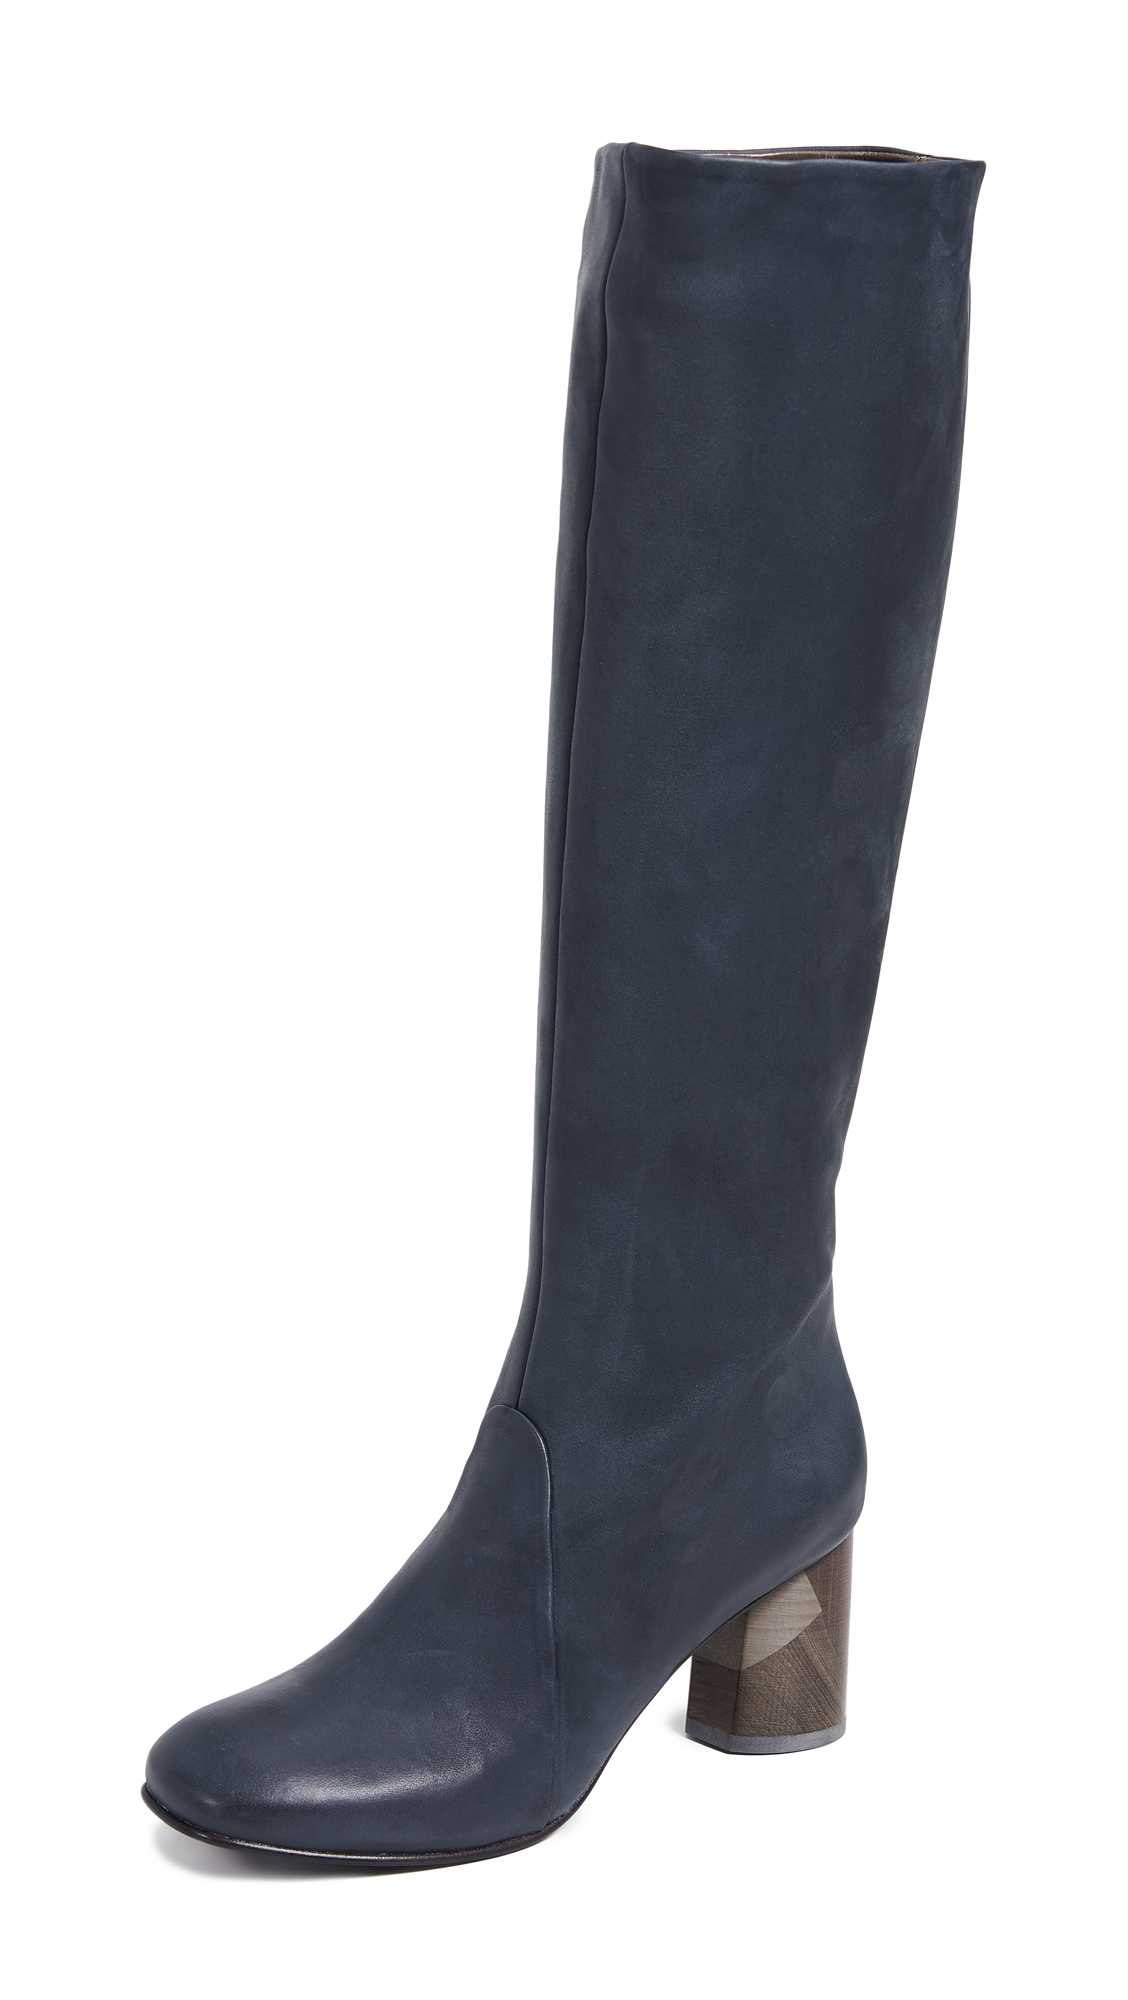 Coclico Shoes Lilac Tall Boots - Coal